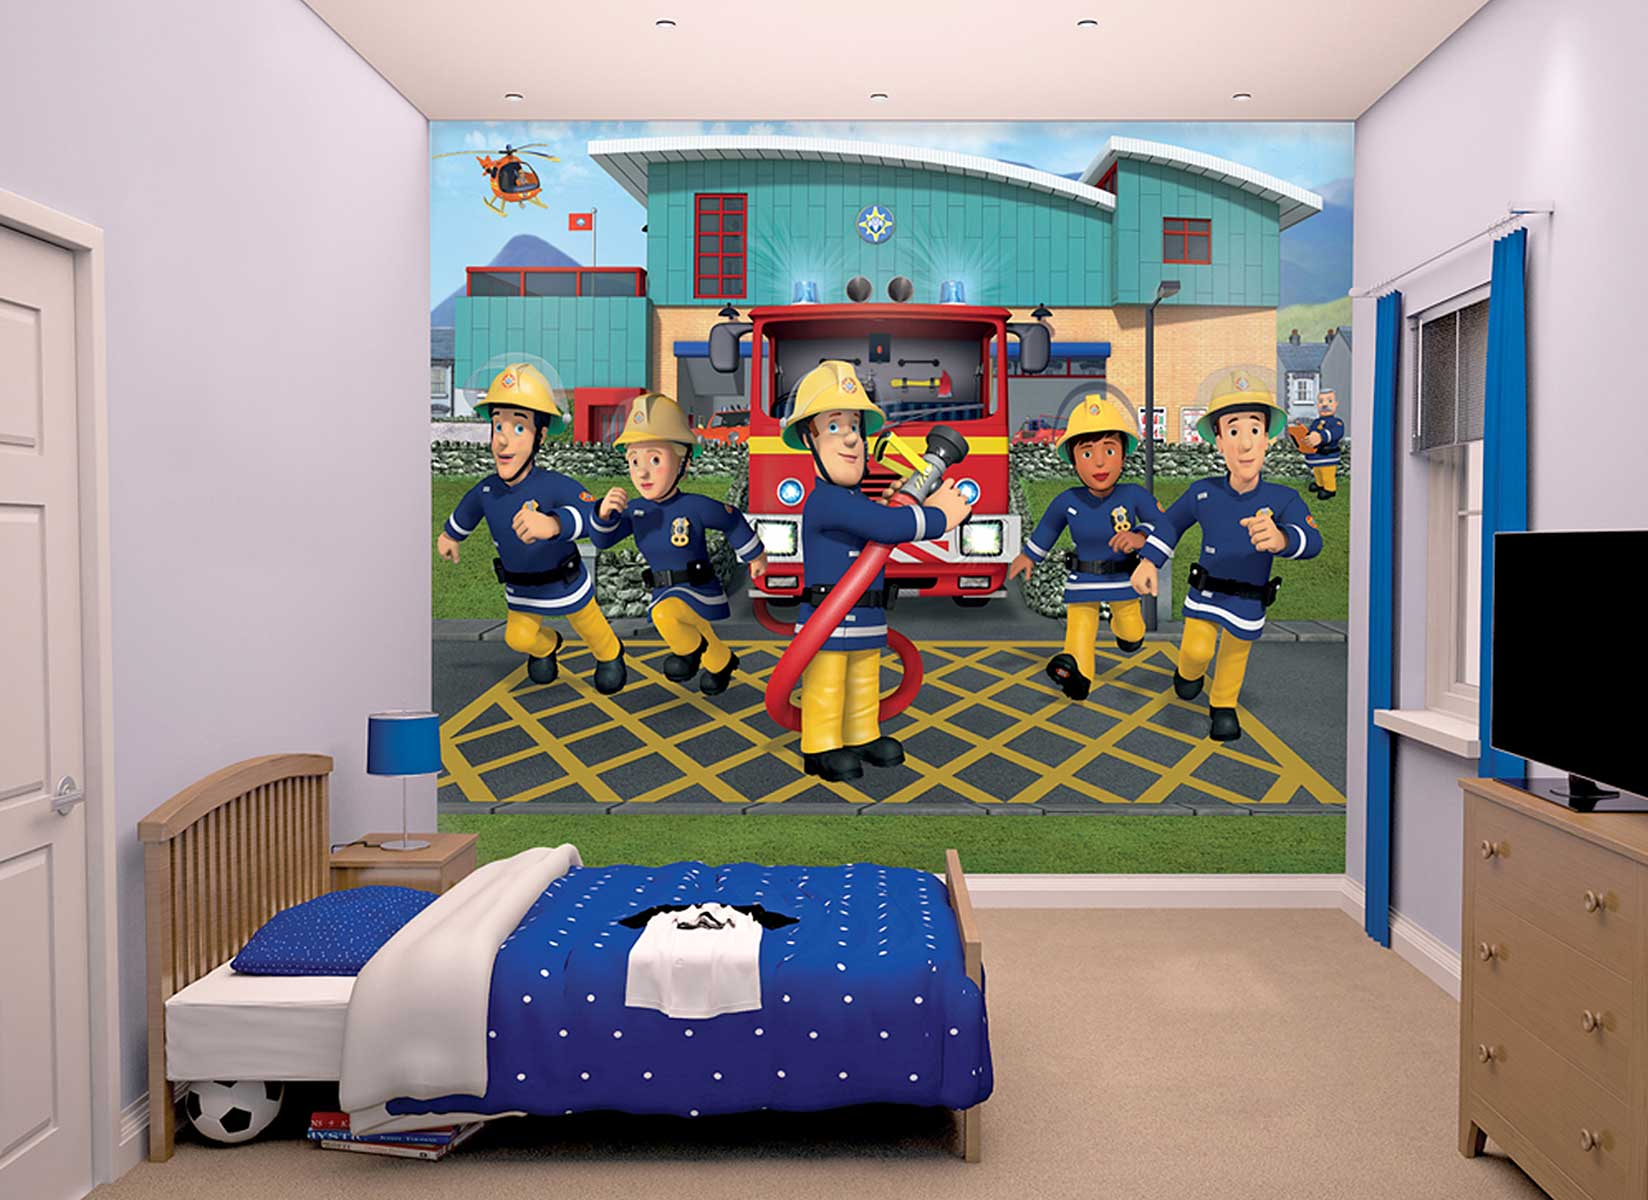 walltastic fototapete kinderzimmer feuerwehrmann sam www 4. Black Bedroom Furniture Sets. Home Design Ideas